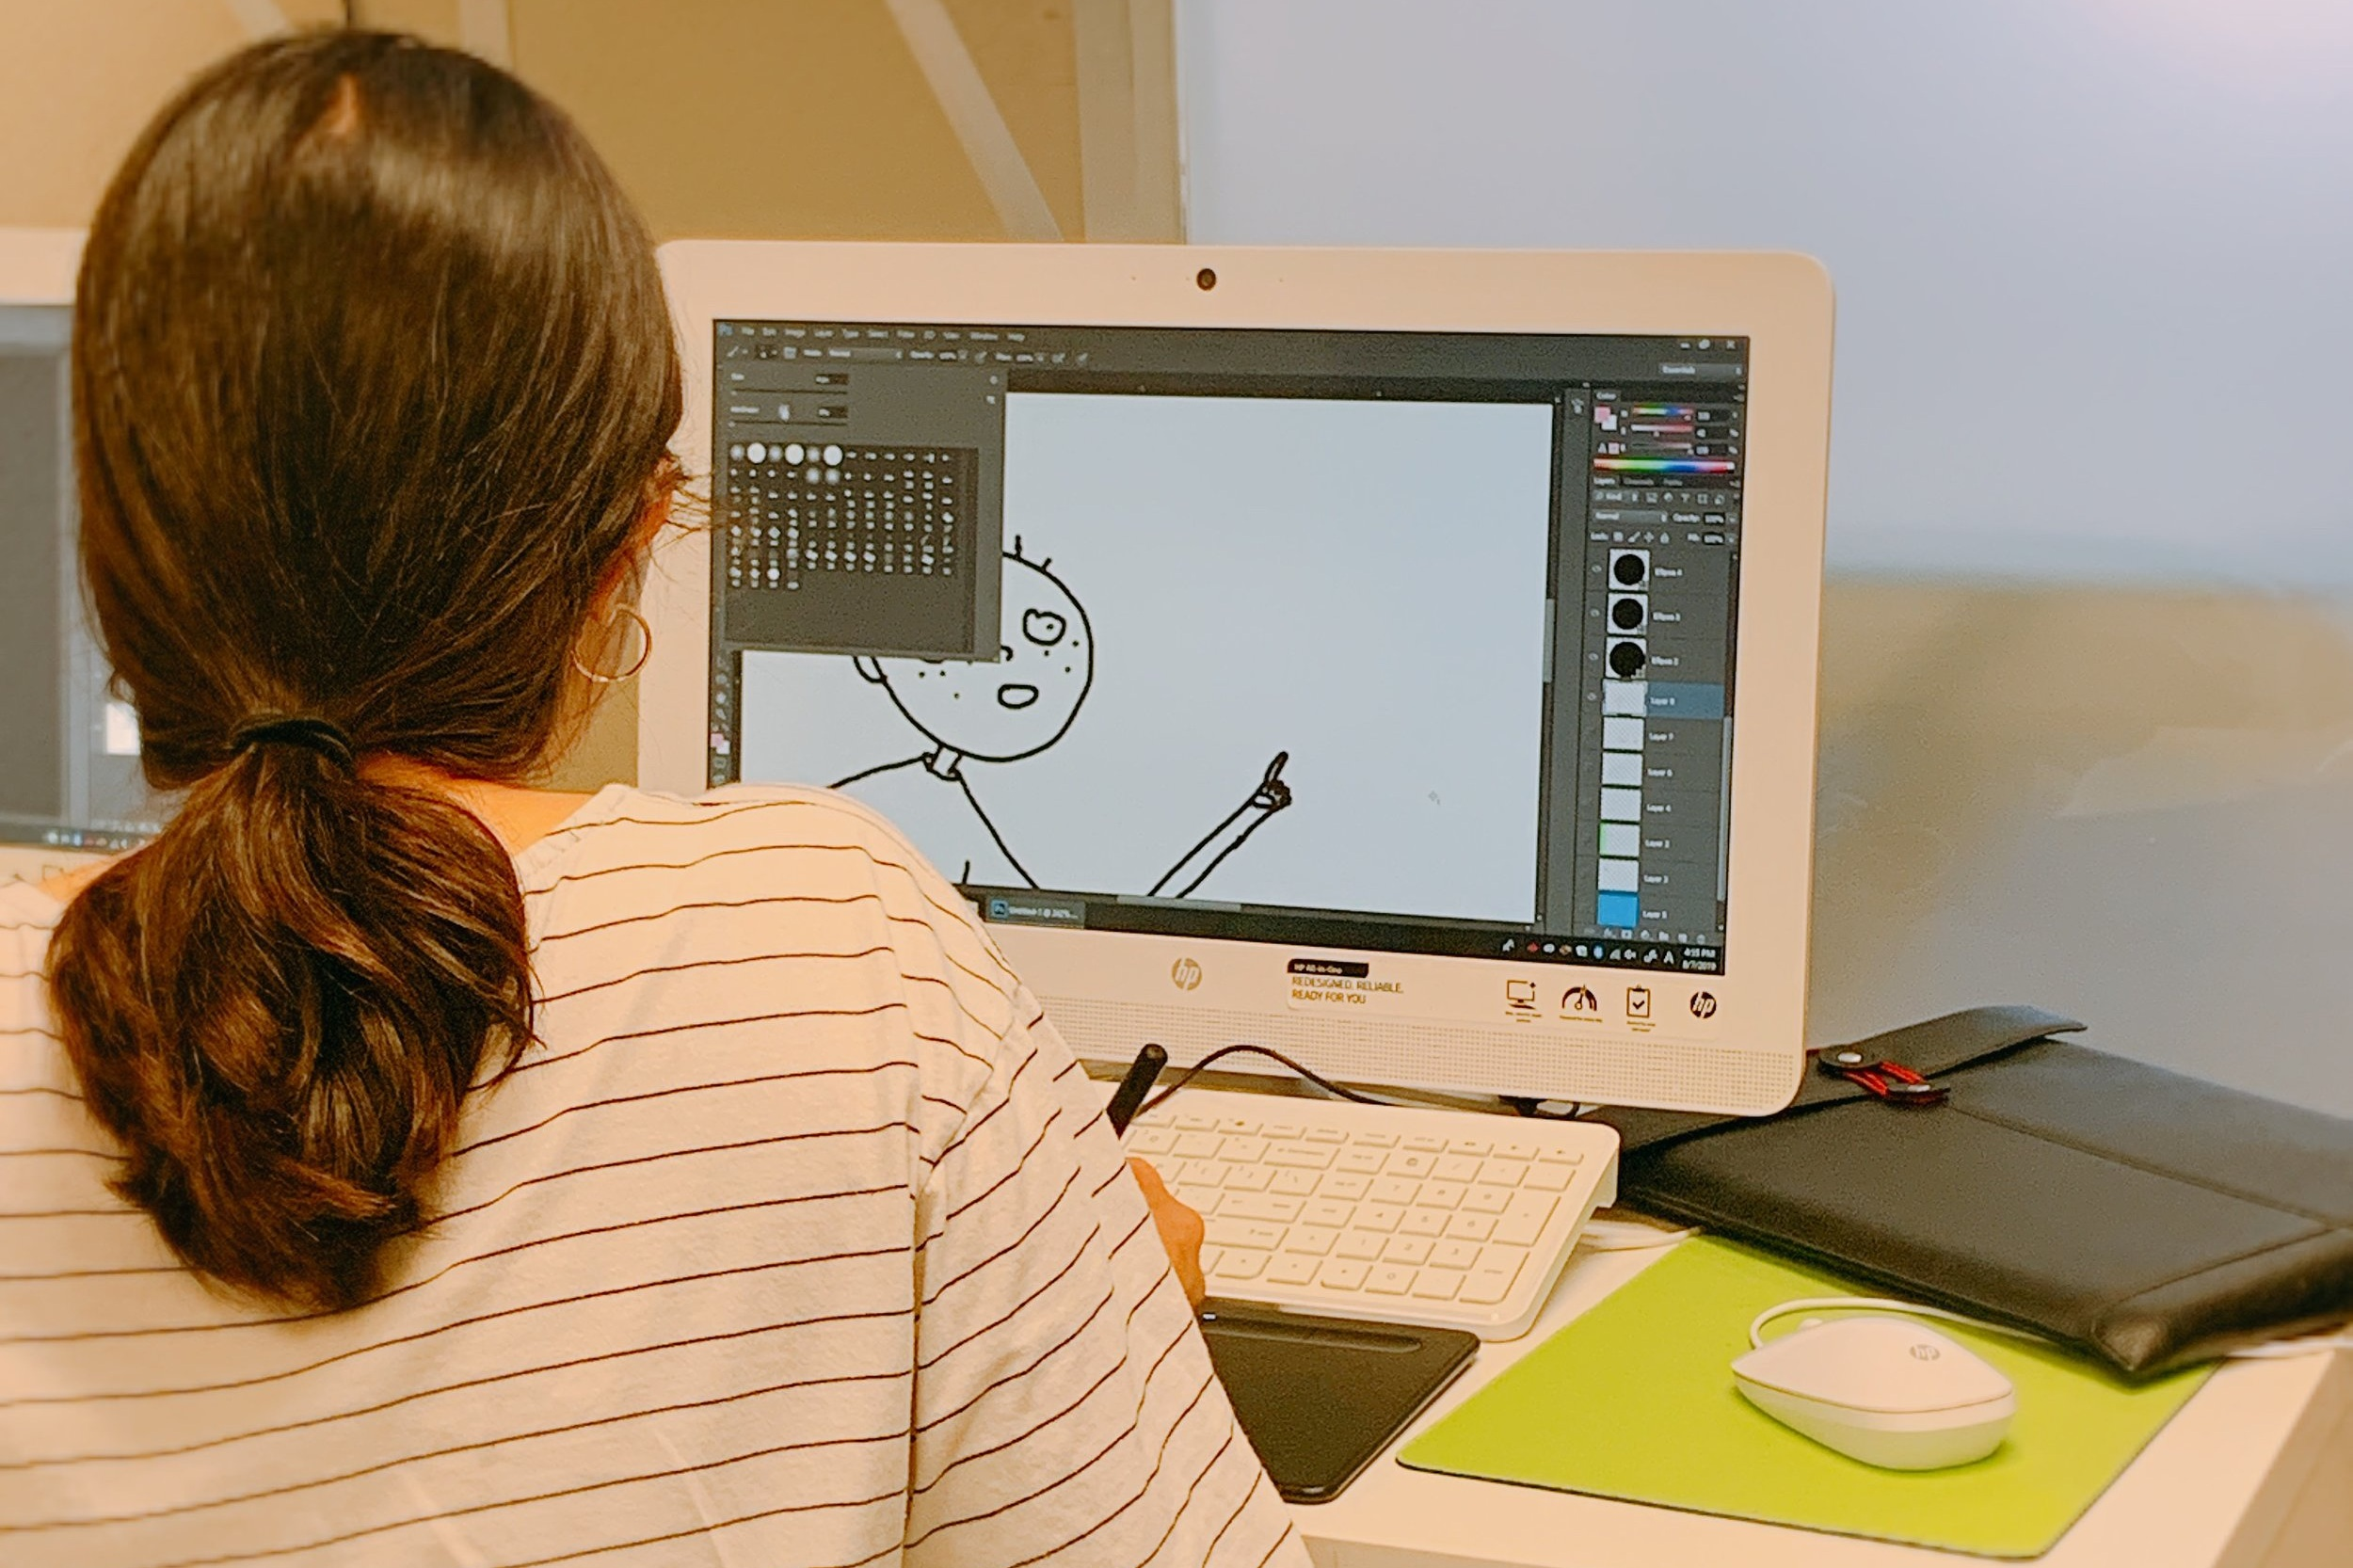 DIGITAL ARTS CLASS - Students will learn how to do the basics of Adobe Photoshop, Illustrator, InDesign, etc.